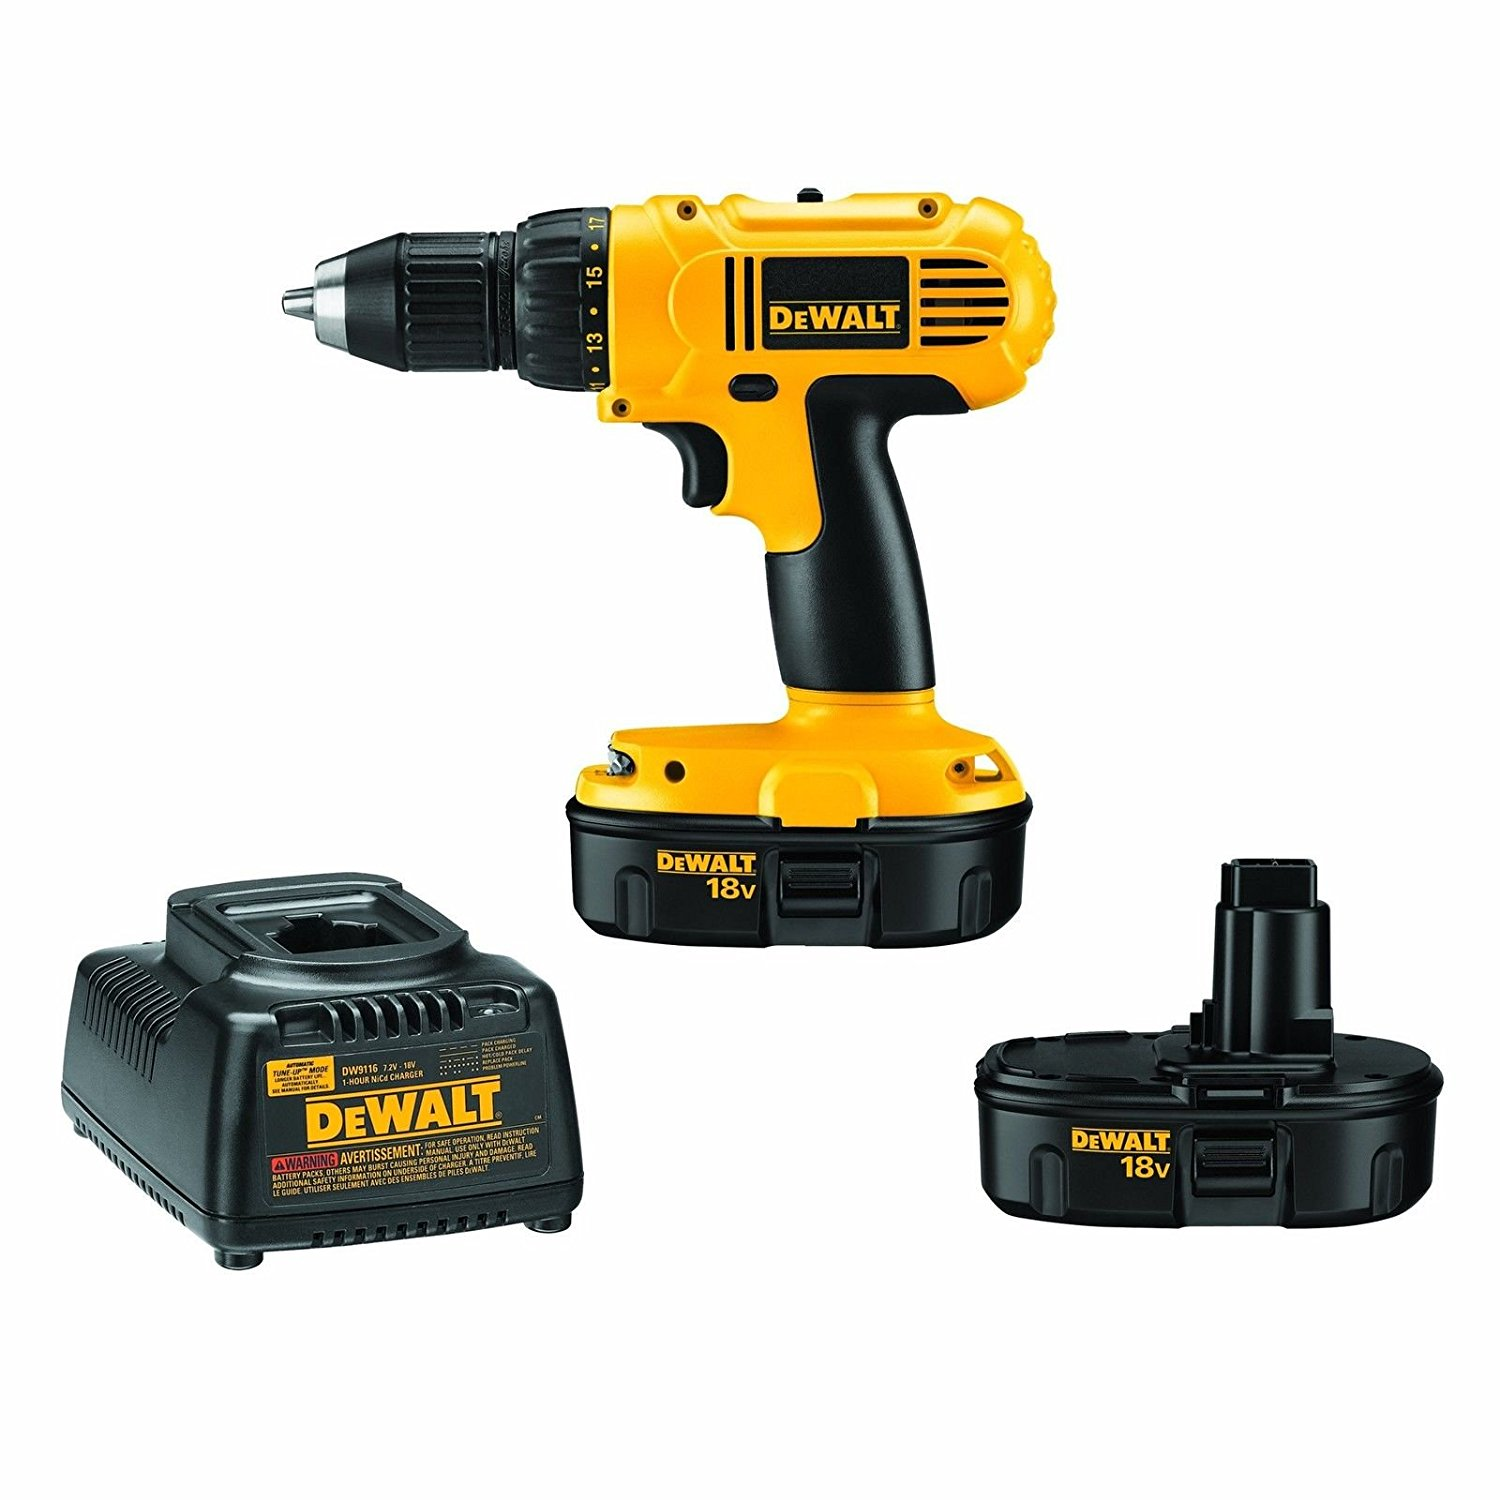 DEWALT DC970K-2 18-Volt Drill/Driver Kit w/ 2 Batteries, Charger, and Bag -- New /RM#G4H4E54 E4R46T32507300